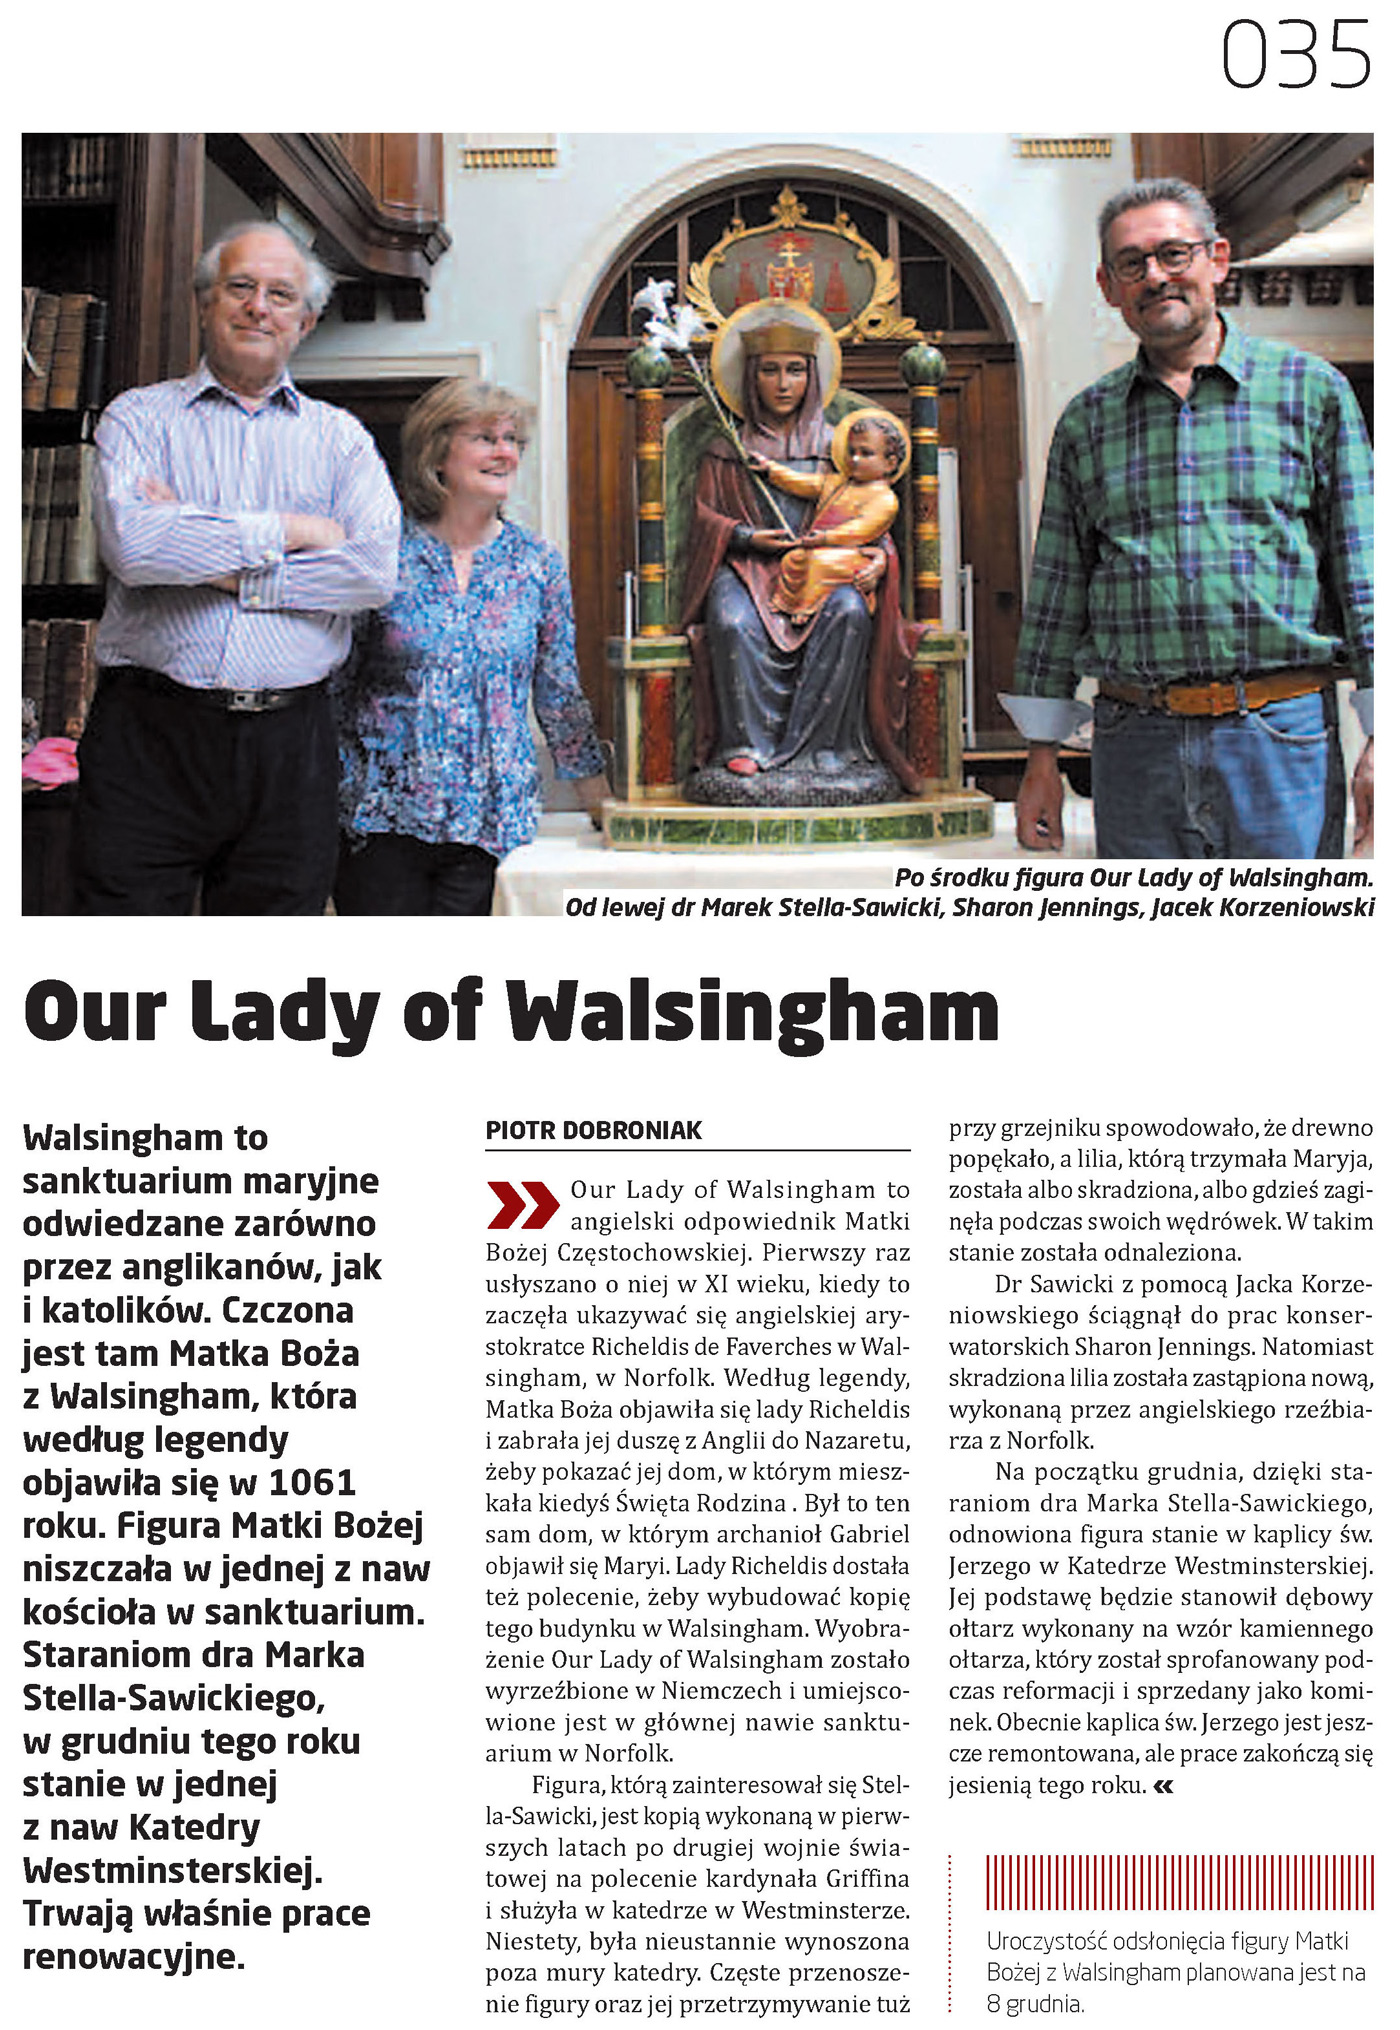 Cooltura: Our Lady of Walsingham